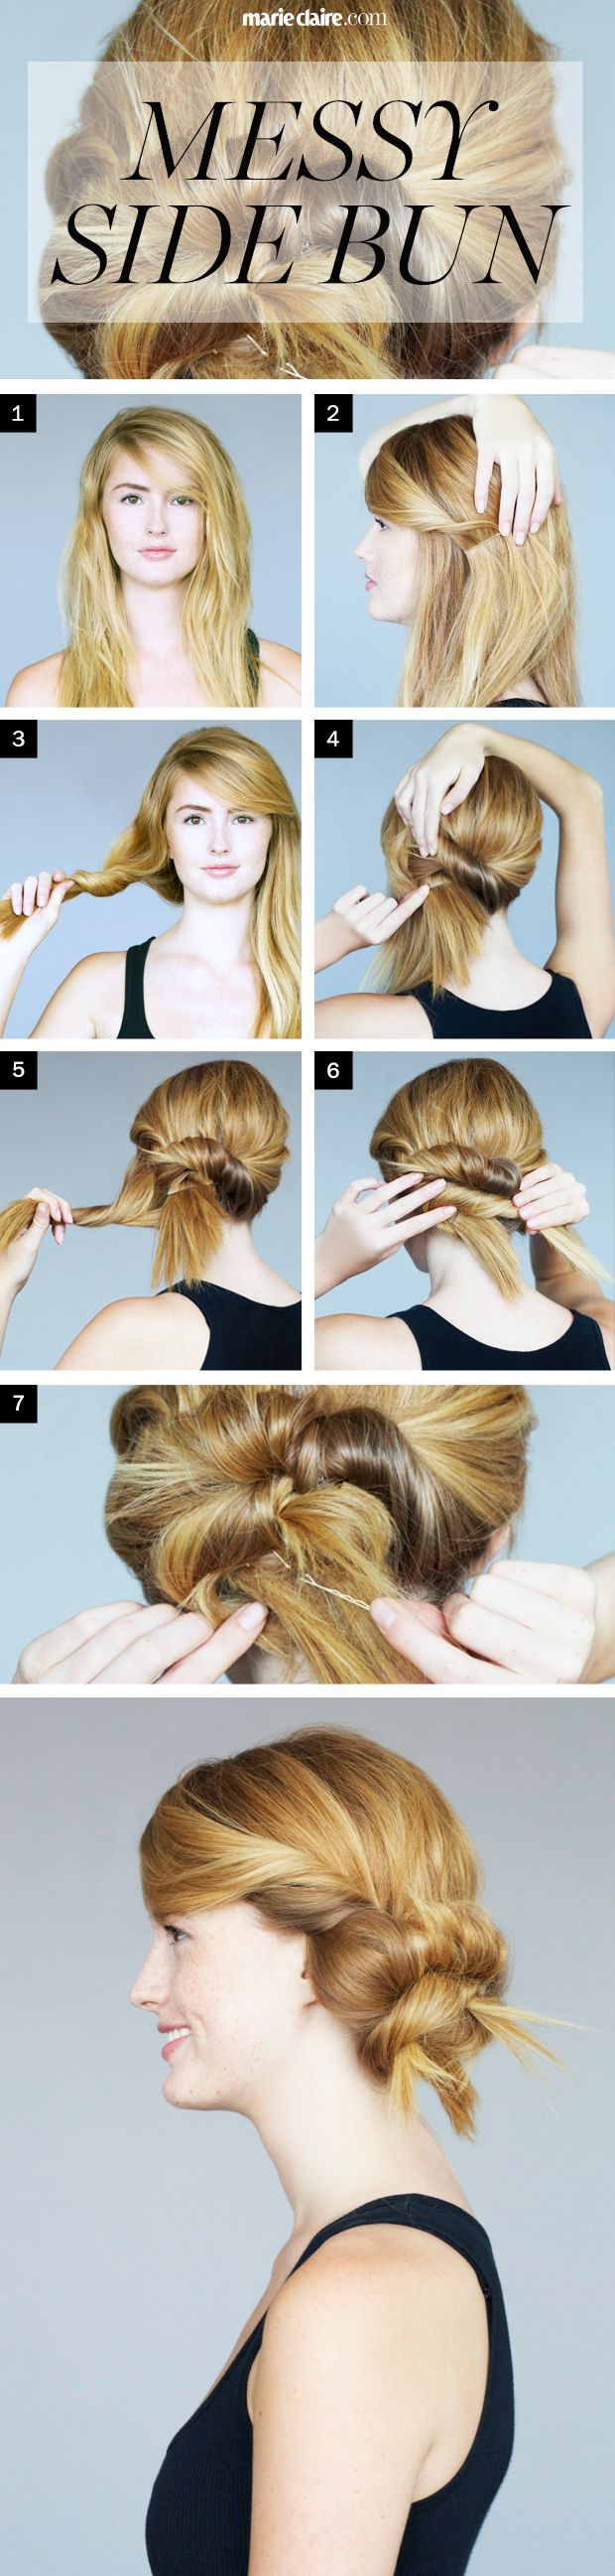 Hair How-To: Messy Side Bun with a Twist   We love a messy side bun hairstyle, so find out how to do it on your own! Follow these easy steps to create the style.